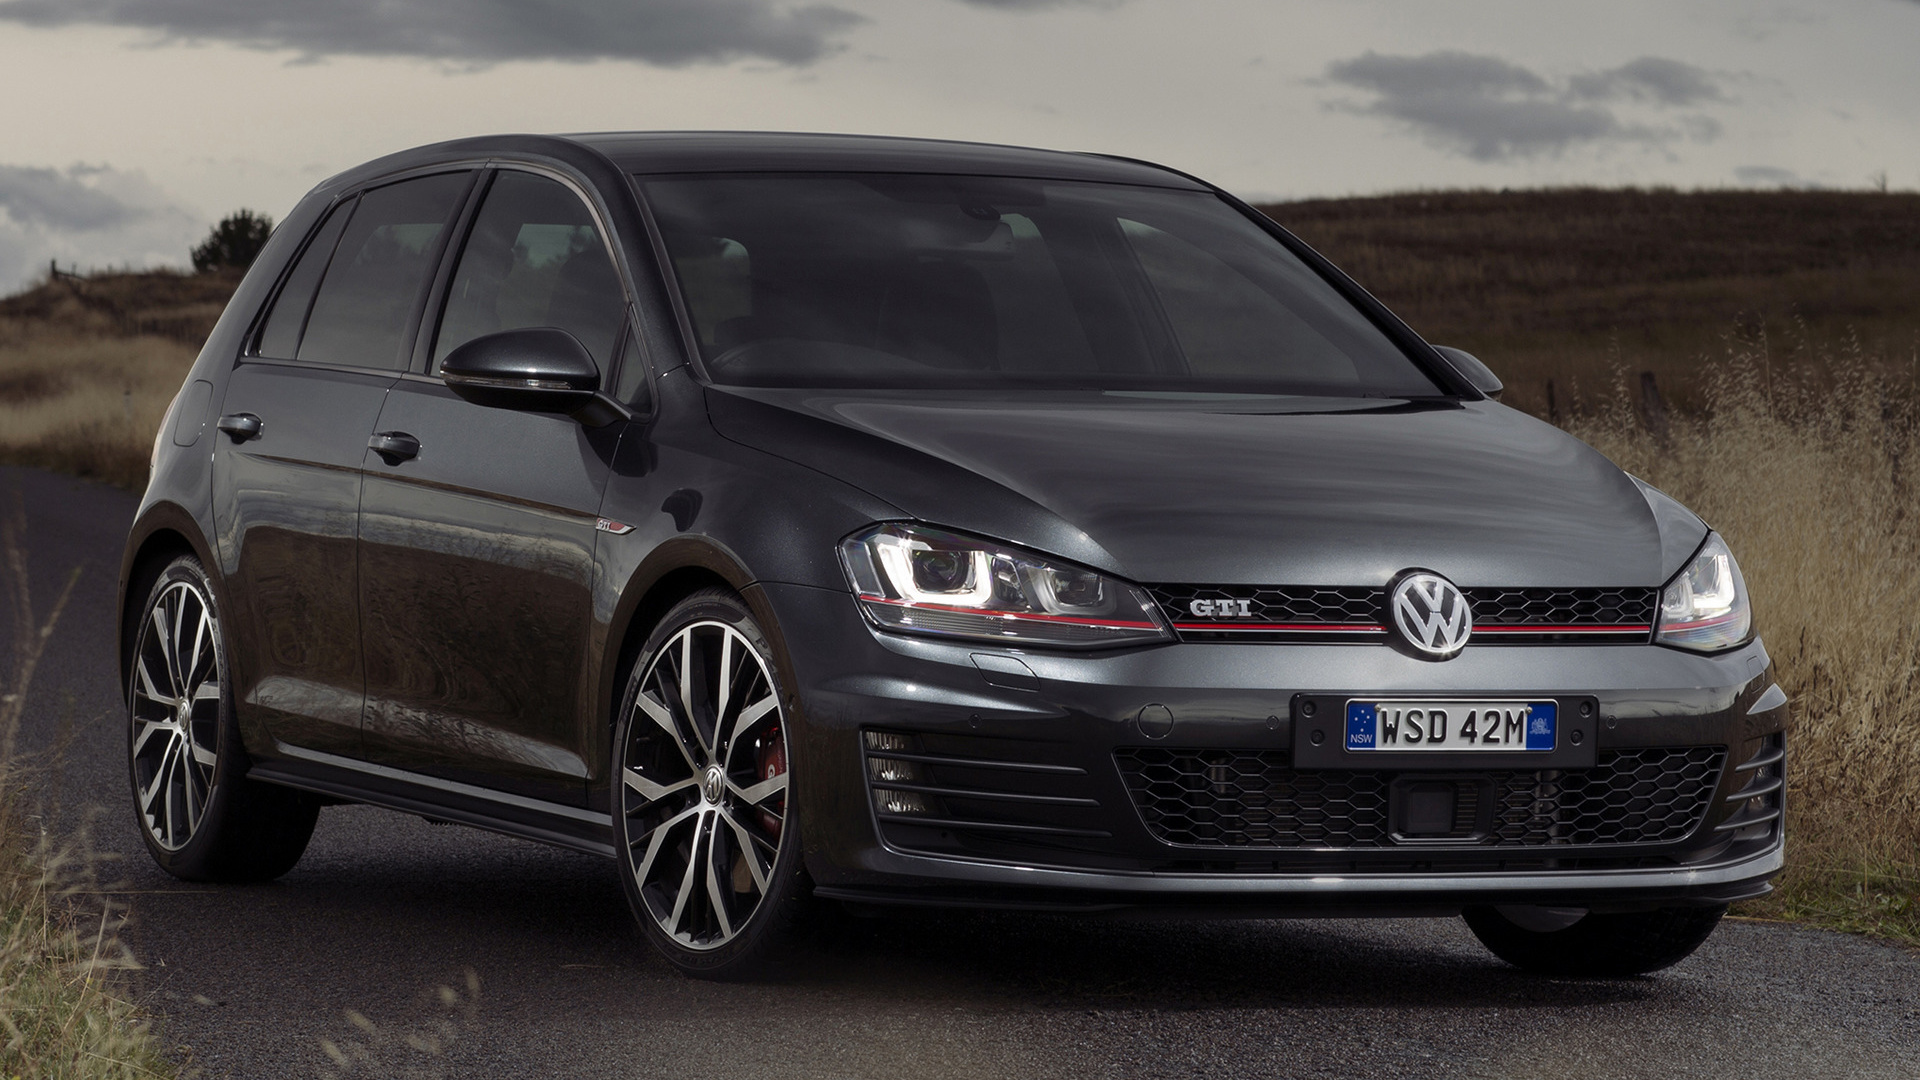 2018 volkswagen golf gti 5 door car photos catalog 2019. Black Bedroom Furniture Sets. Home Design Ideas